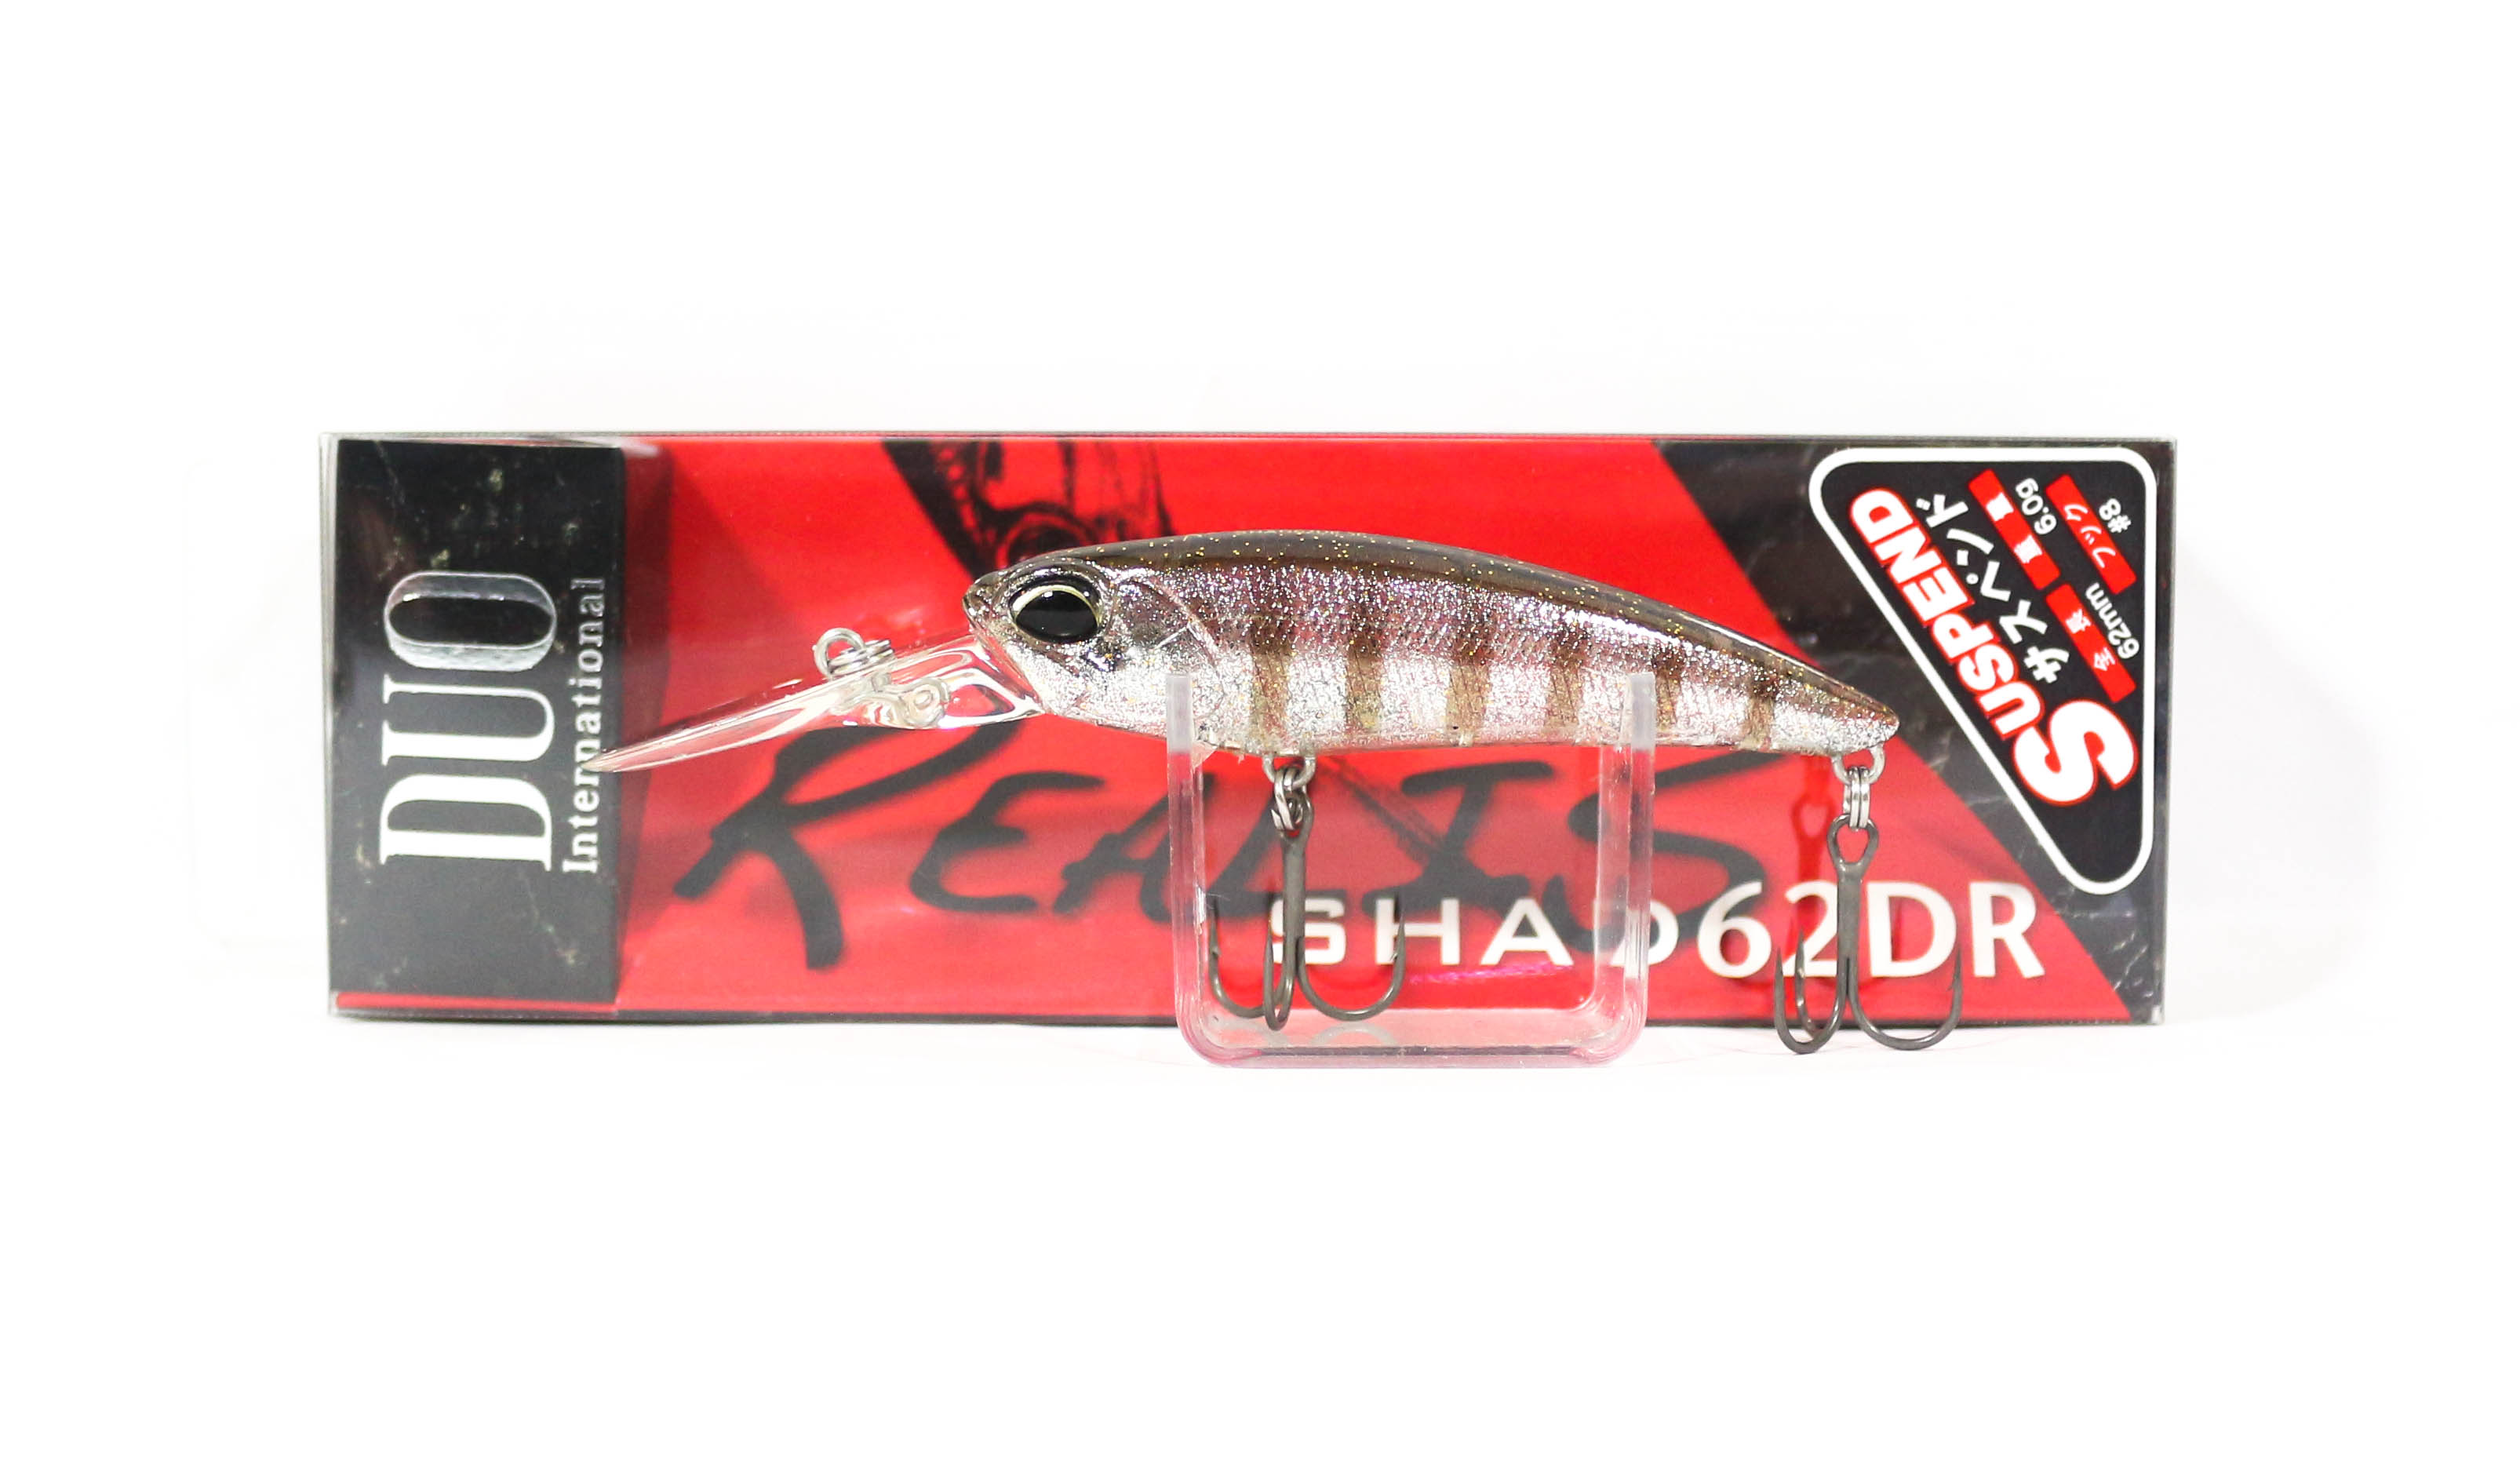 Duo Realis Shad 62 DR Suspend Lure CCC3330 (6780)